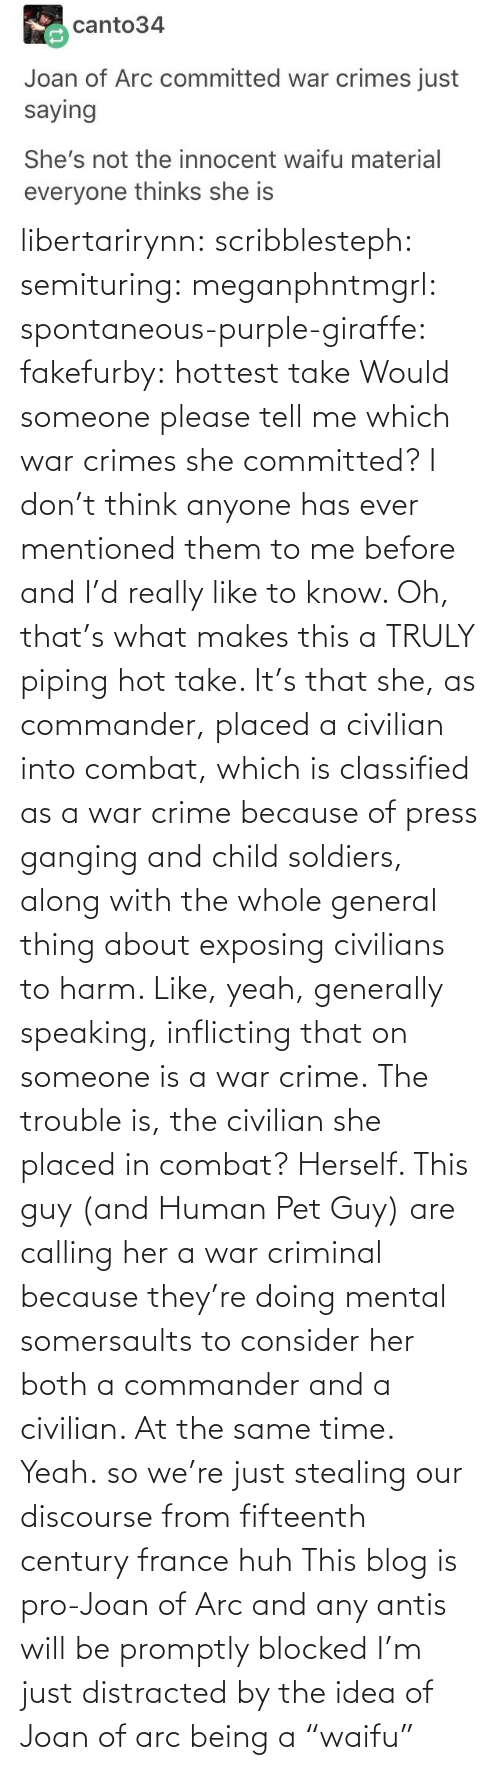 "human: libertarirynn: scribblesteph:  semituring:  meganphntmgrl:  spontaneous-purple-giraffe:   fakefurby: hottest take  Would someone please tell me which war crimes she committed? I don't think anyone has ever mentioned them to me before and I'd really like to know.    Oh, that's what makes this a TRULY piping hot take. It's that she, as commander, placed a civilian into combat, which is classified as a war crime because of press ganging and child soldiers, along with the whole general thing about exposing civilians to harm. Like, yeah, generally speaking, inflicting that on someone is a war crime. The trouble is, the civilian she placed in combat? Herself.  This guy (and Human Pet Guy) are calling her a war criminal because they're doing mental somersaults to consider her both a commander and a civilian. At the same time.  Yeah.  so we're just stealing our discourse from fifteenth century france huh   This blog is pro-Joan of Arc and any antis will be promptly blocked   I'm just distracted by the idea of Joan of arc being a ""waifu"""